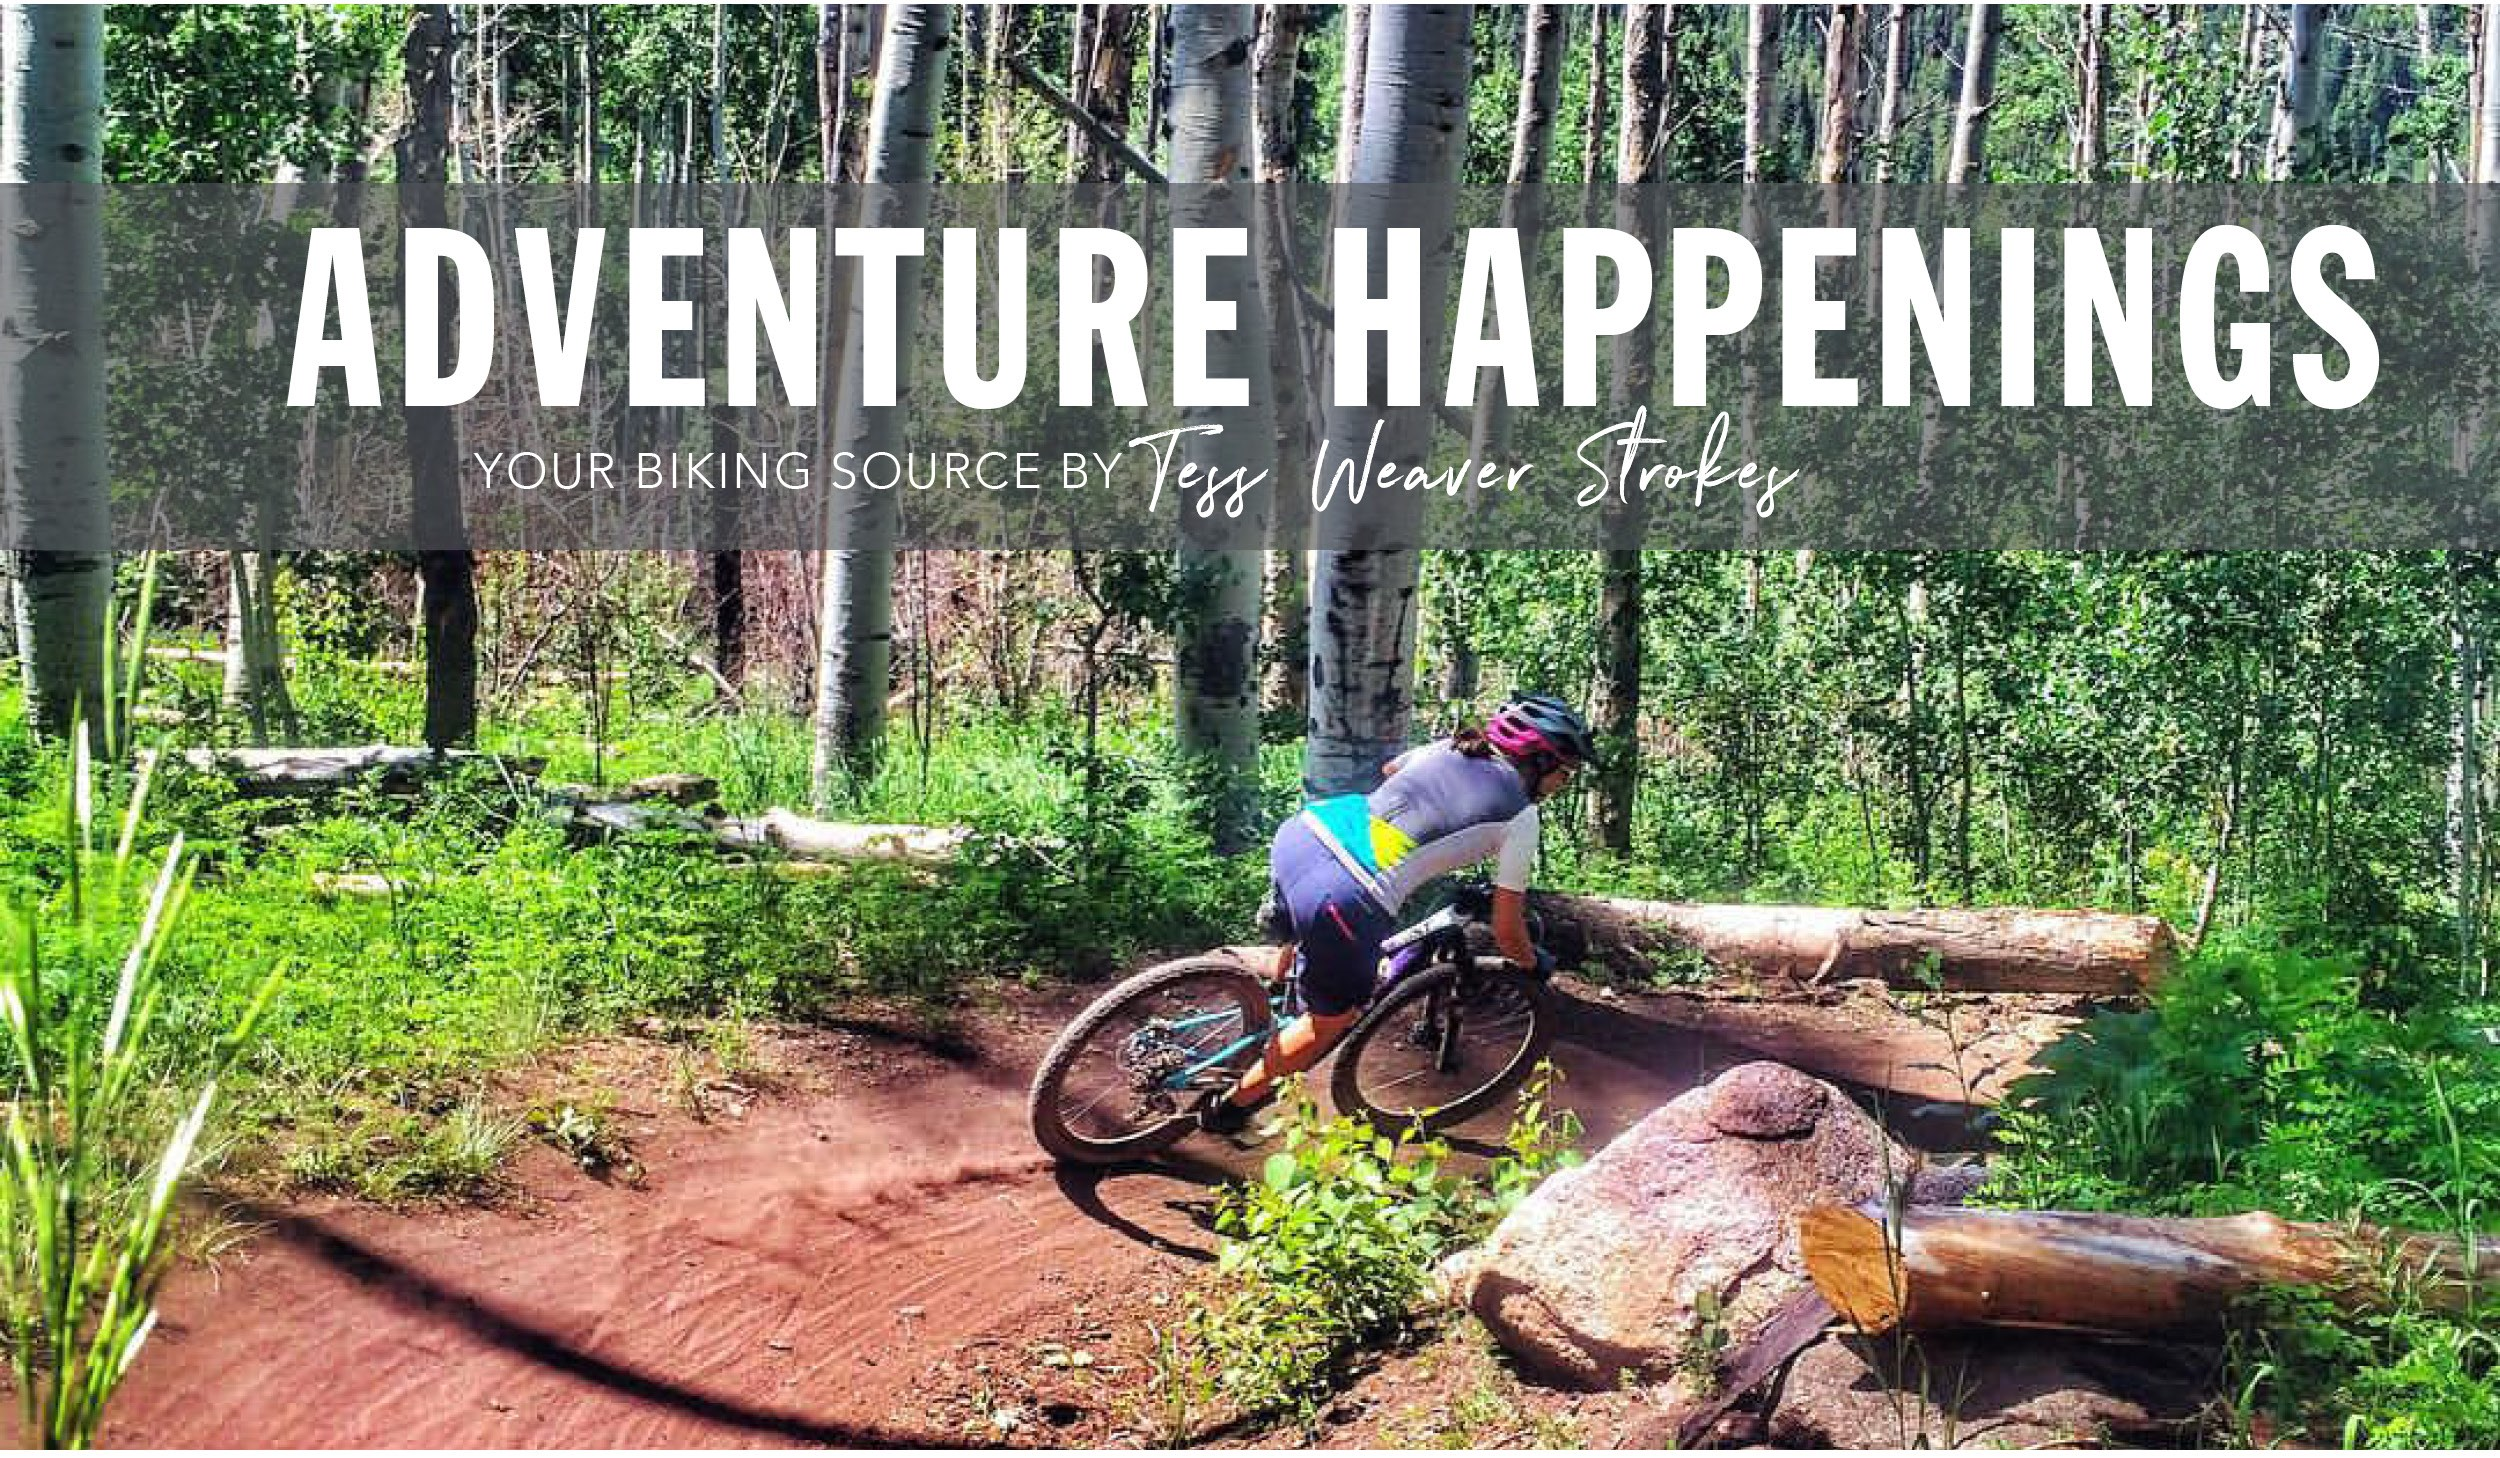 Adventure Happenings. Your Biking Source with Tess Weaver Strokes